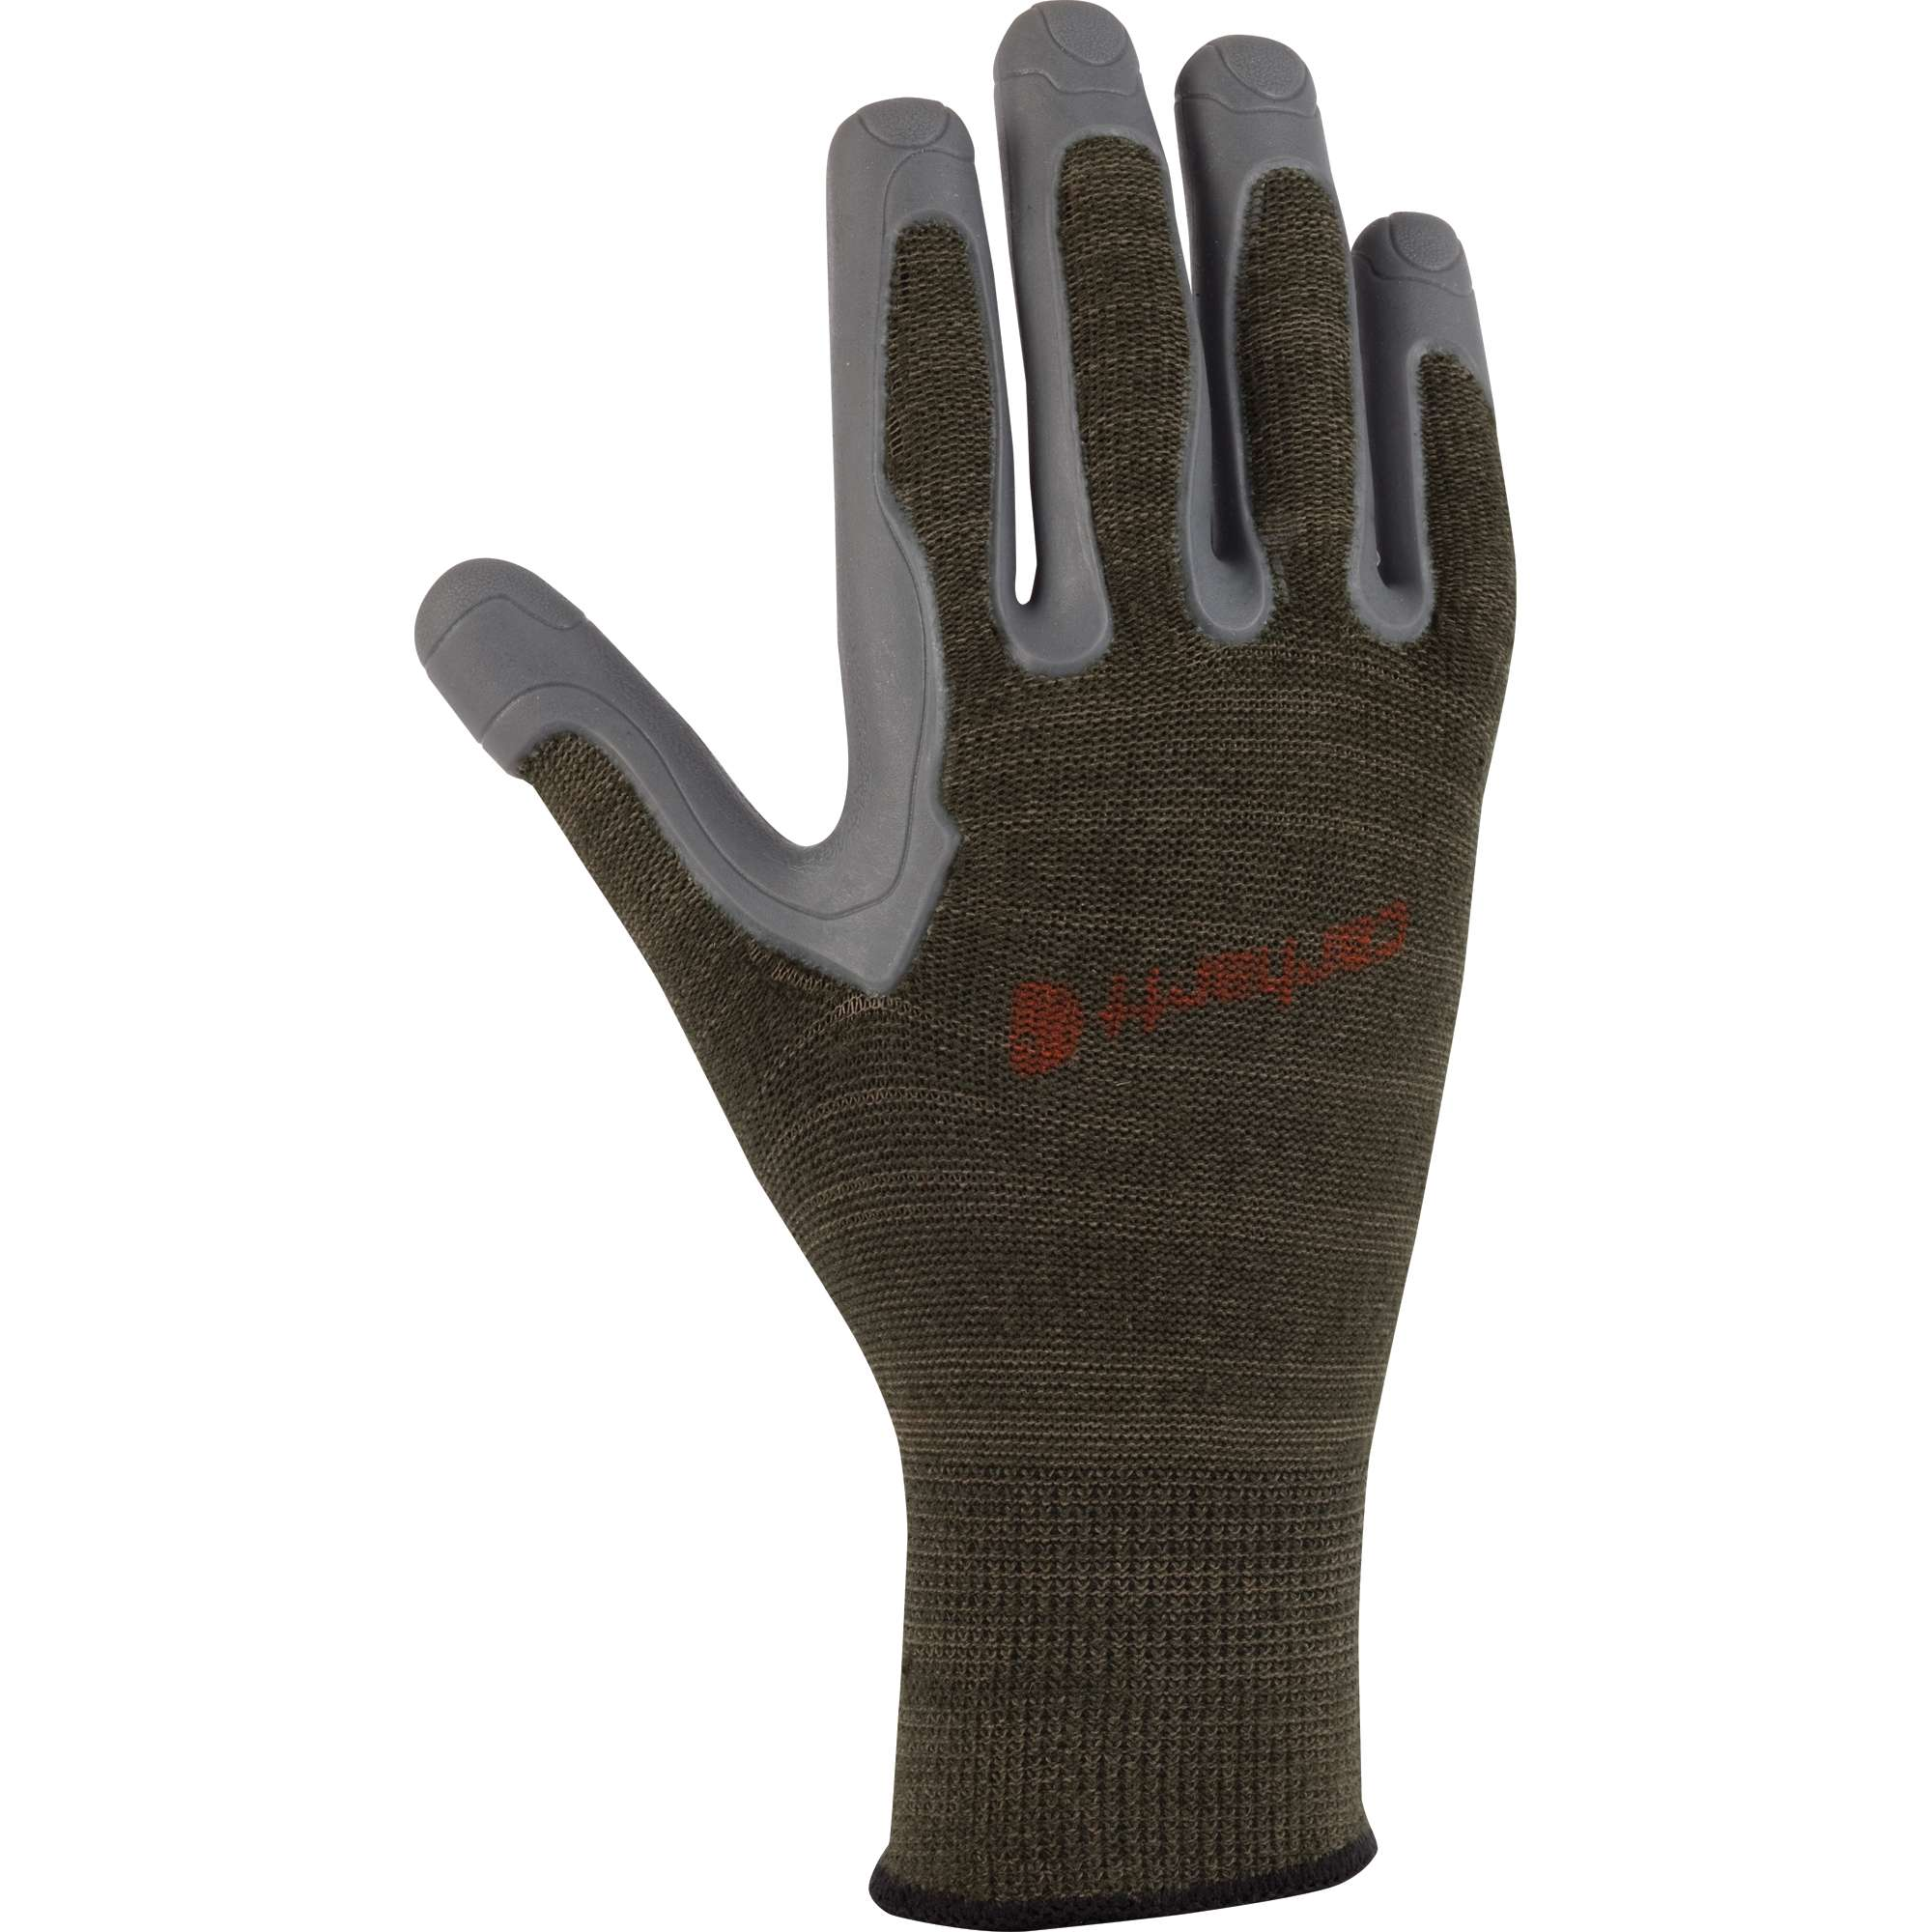 photo: Carhartt C-Grip glove/mitten